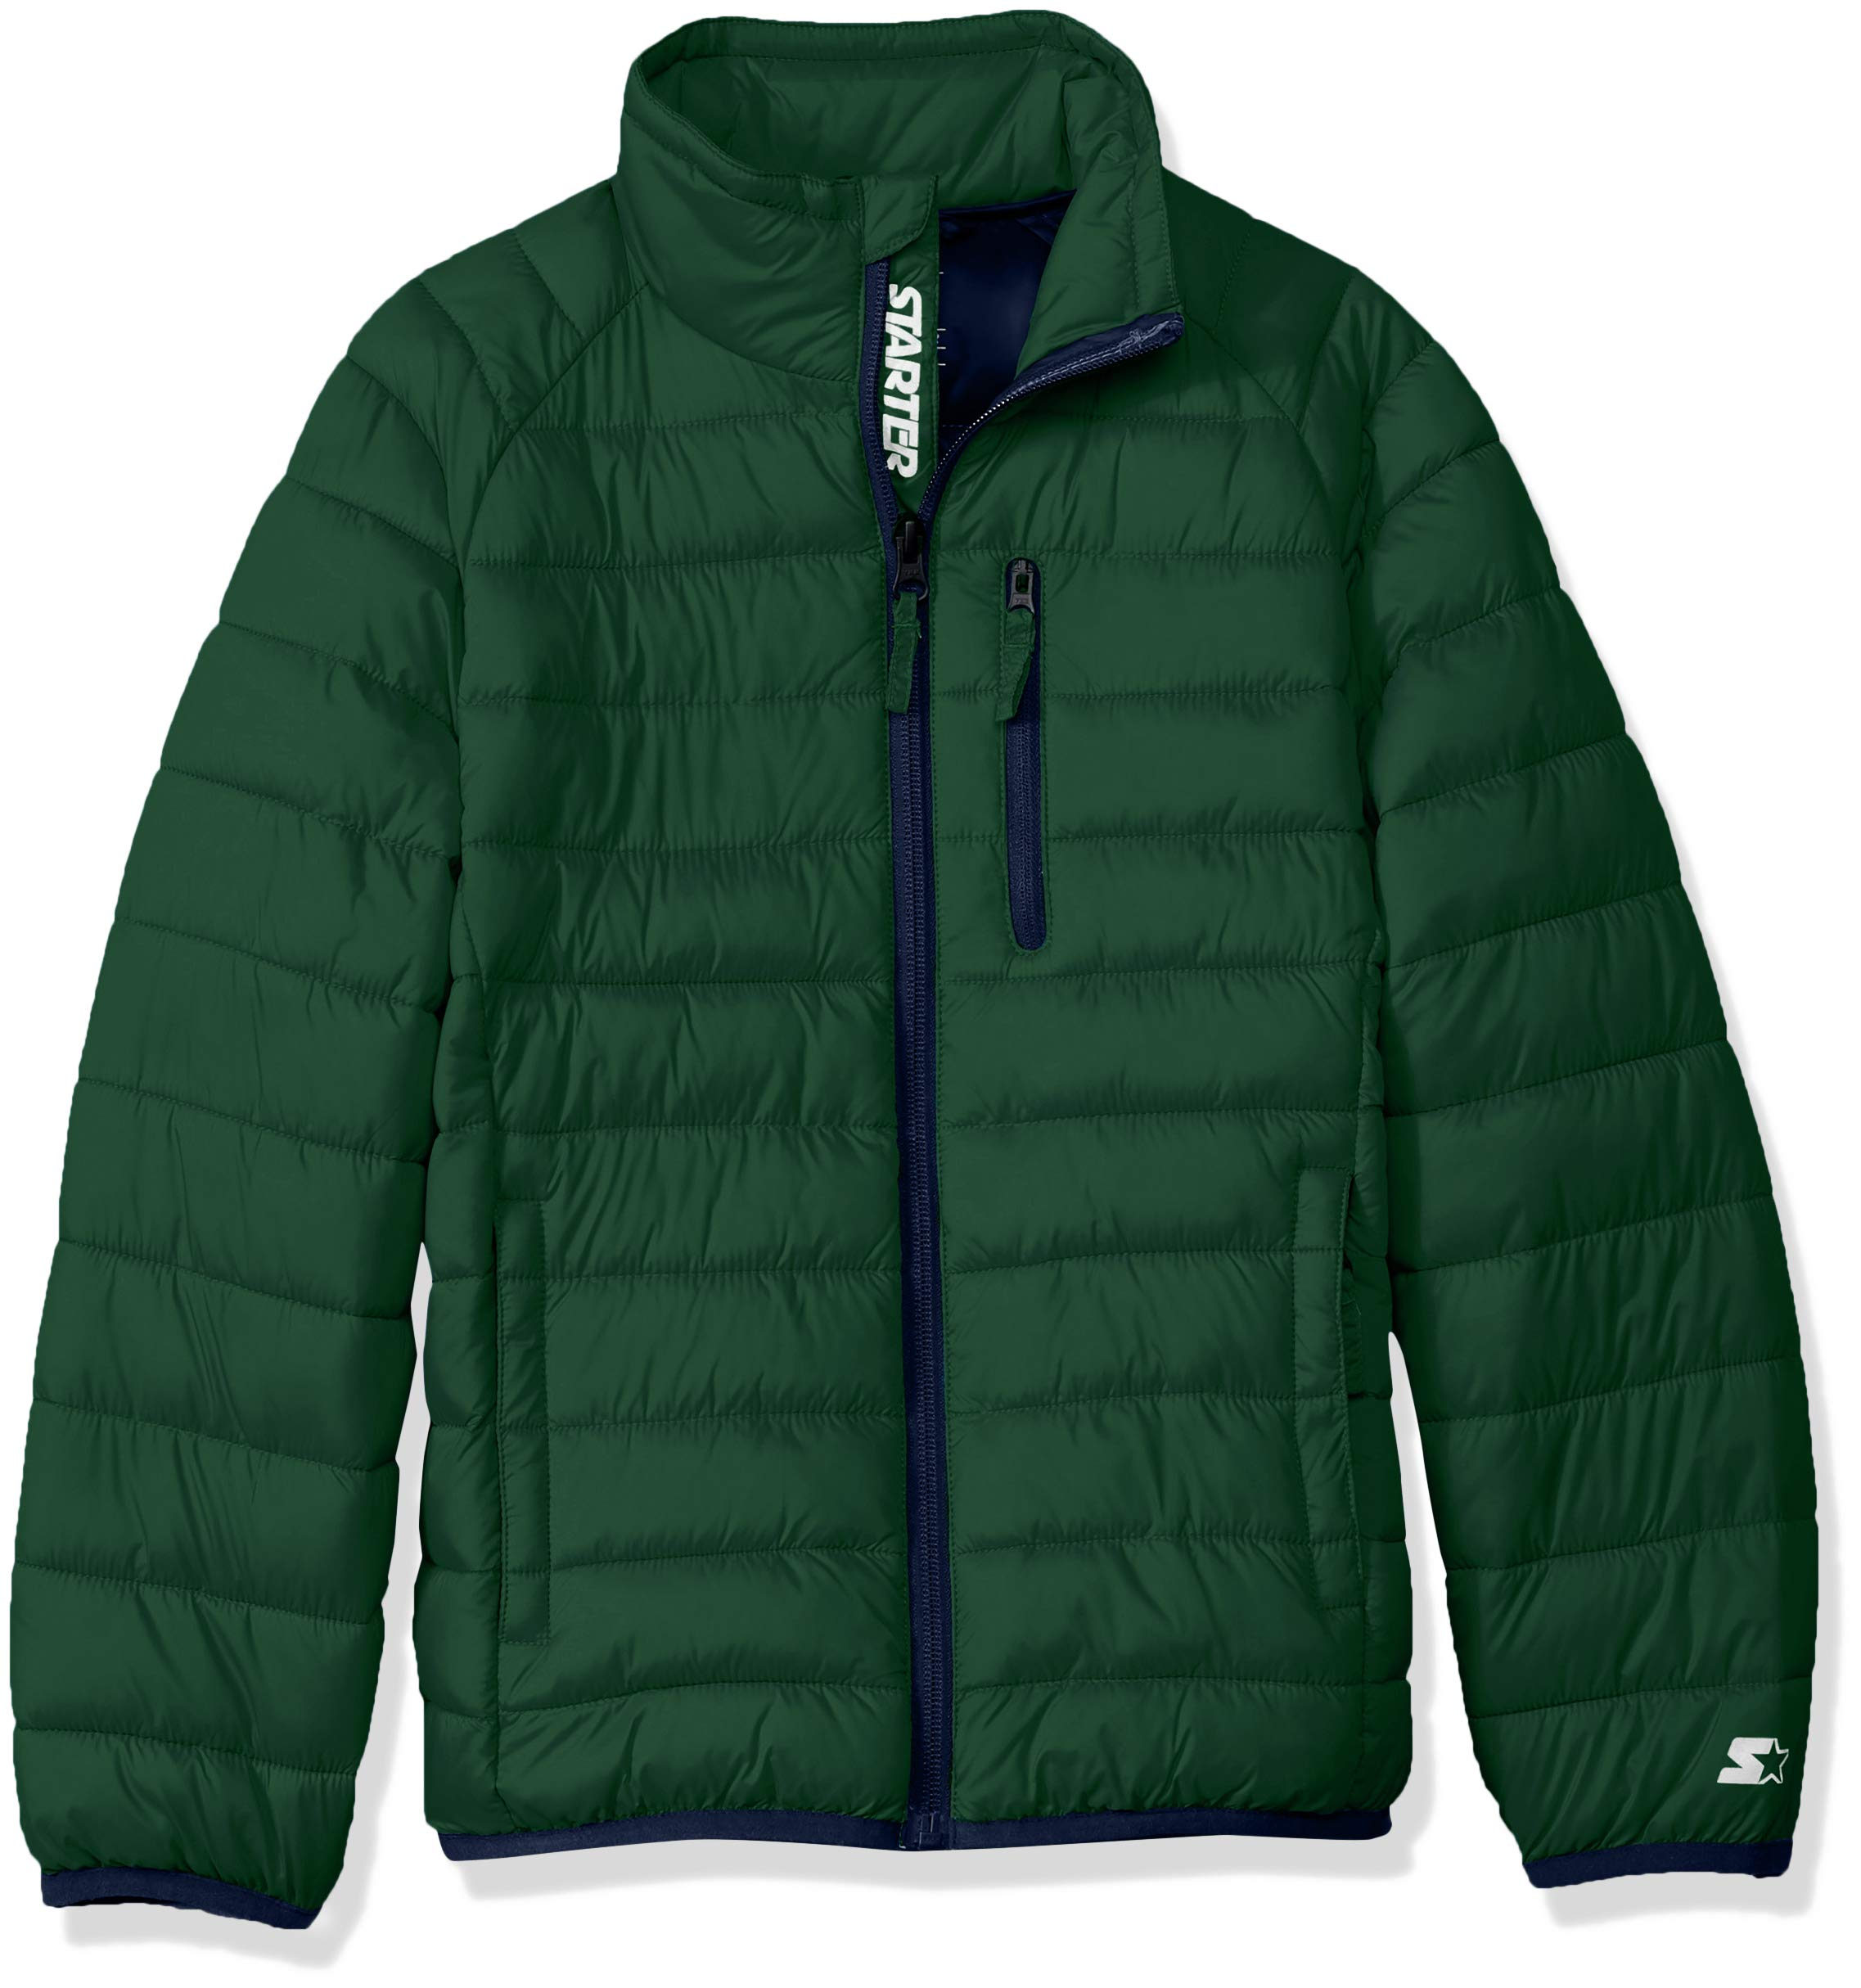 Starter Boys' Packable Puffer Jacket, Amazon Exclusive, Team Outfield Green, XL by Starter